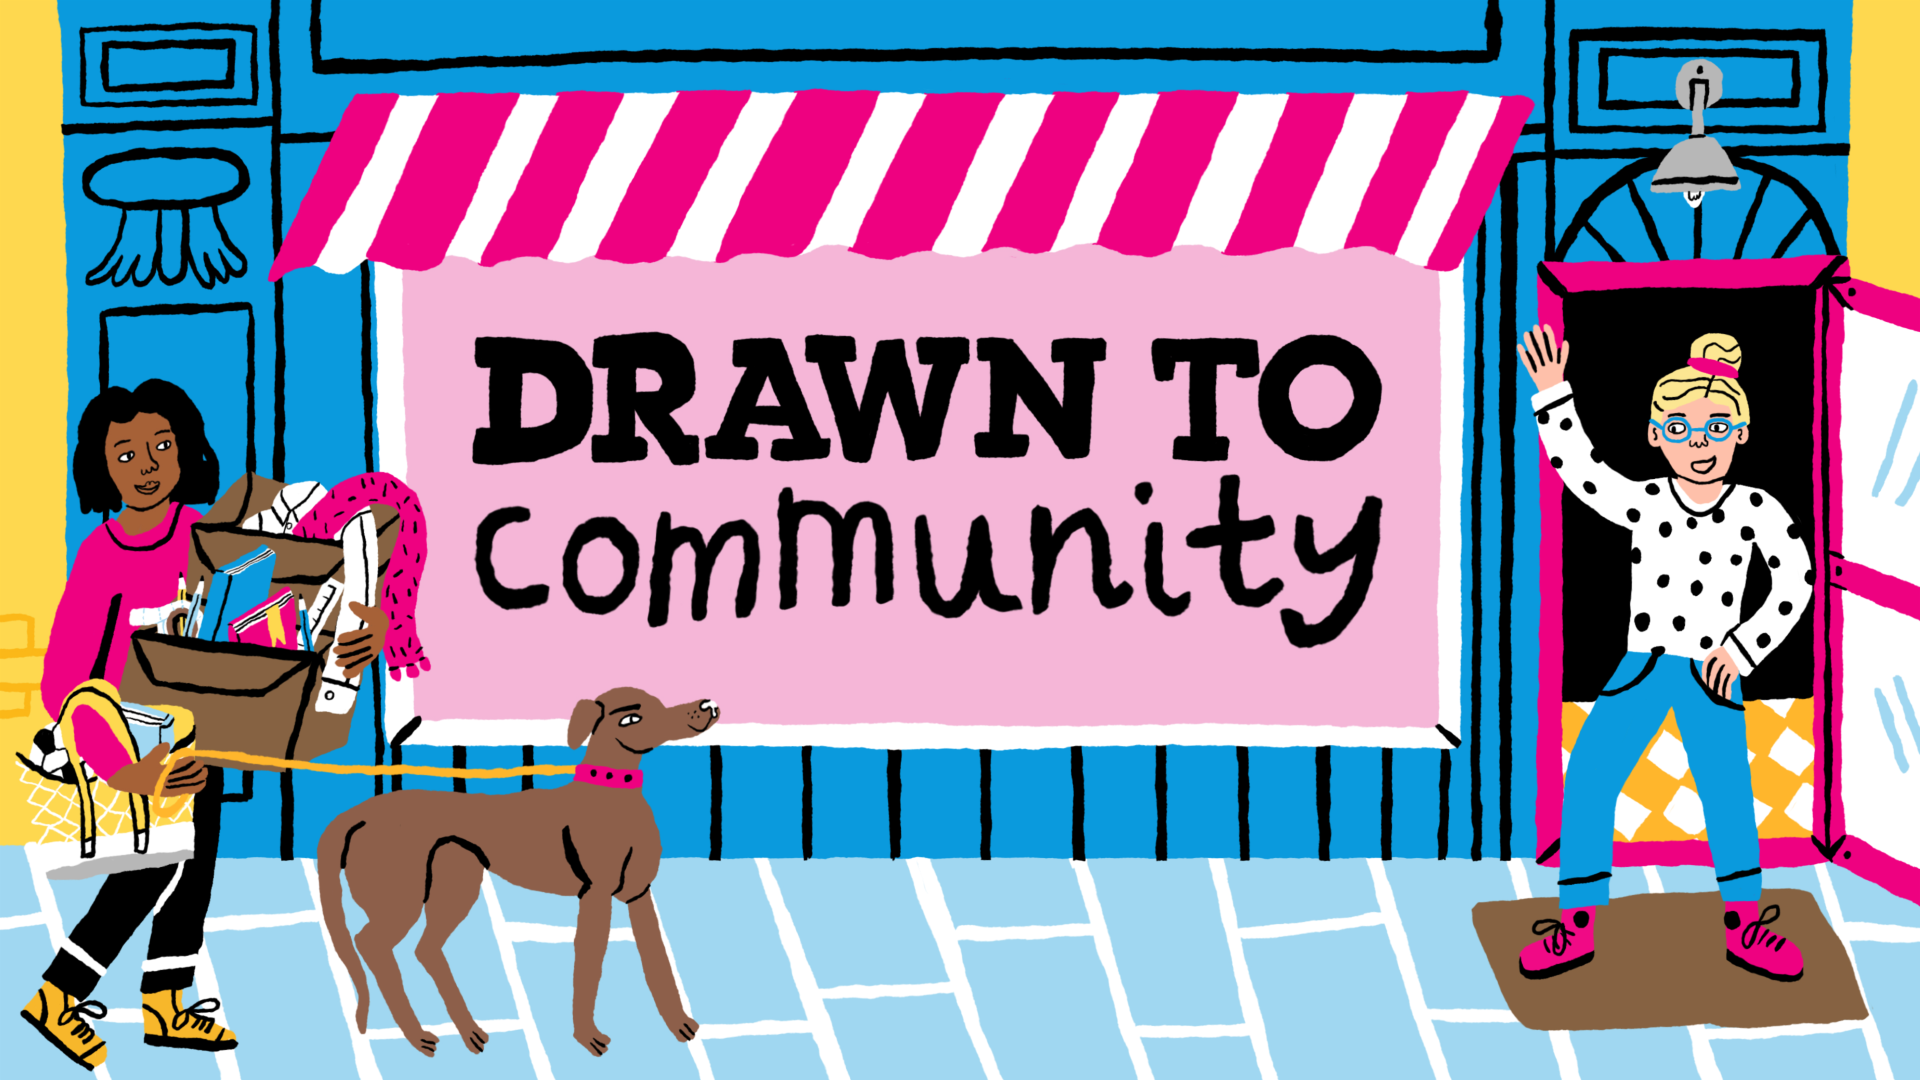 Drawn To Community - Graphic Image